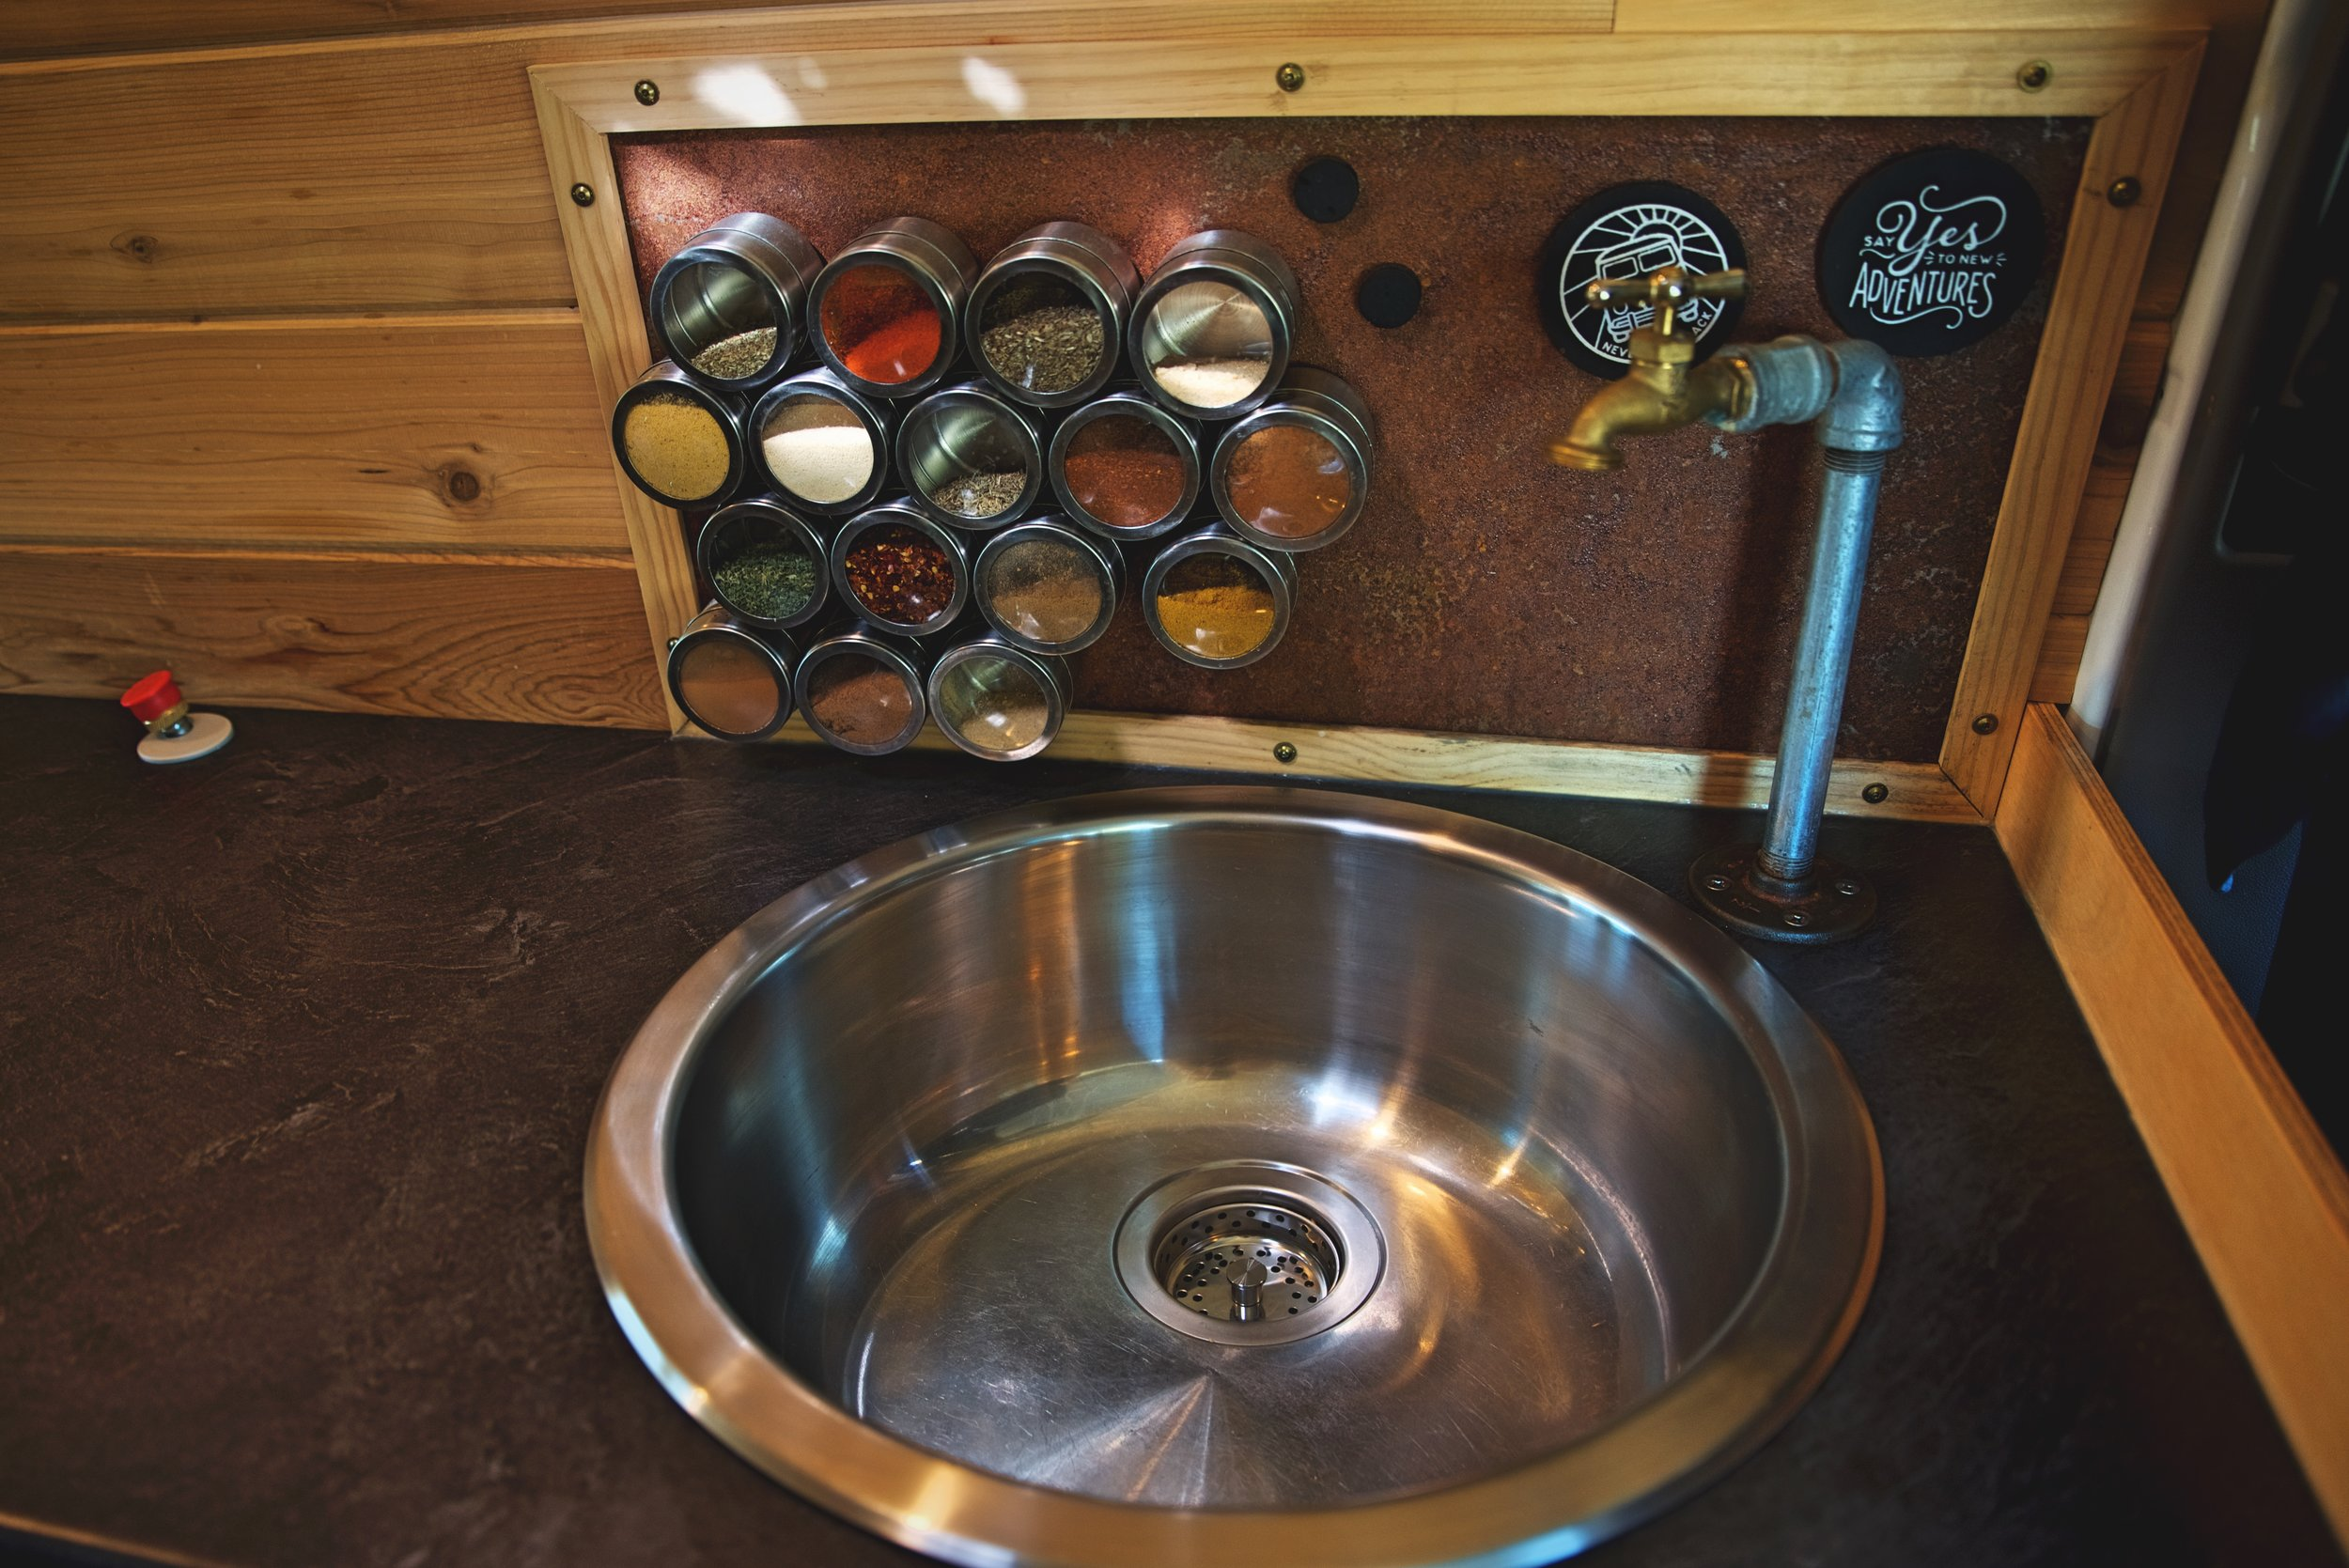 The sink is both an attractive and an extremely functional area of our van's kitchen. We keep our  magnetic spice tins  attached to our metal backsplash, which is a good way to keep them organized while living on the road.